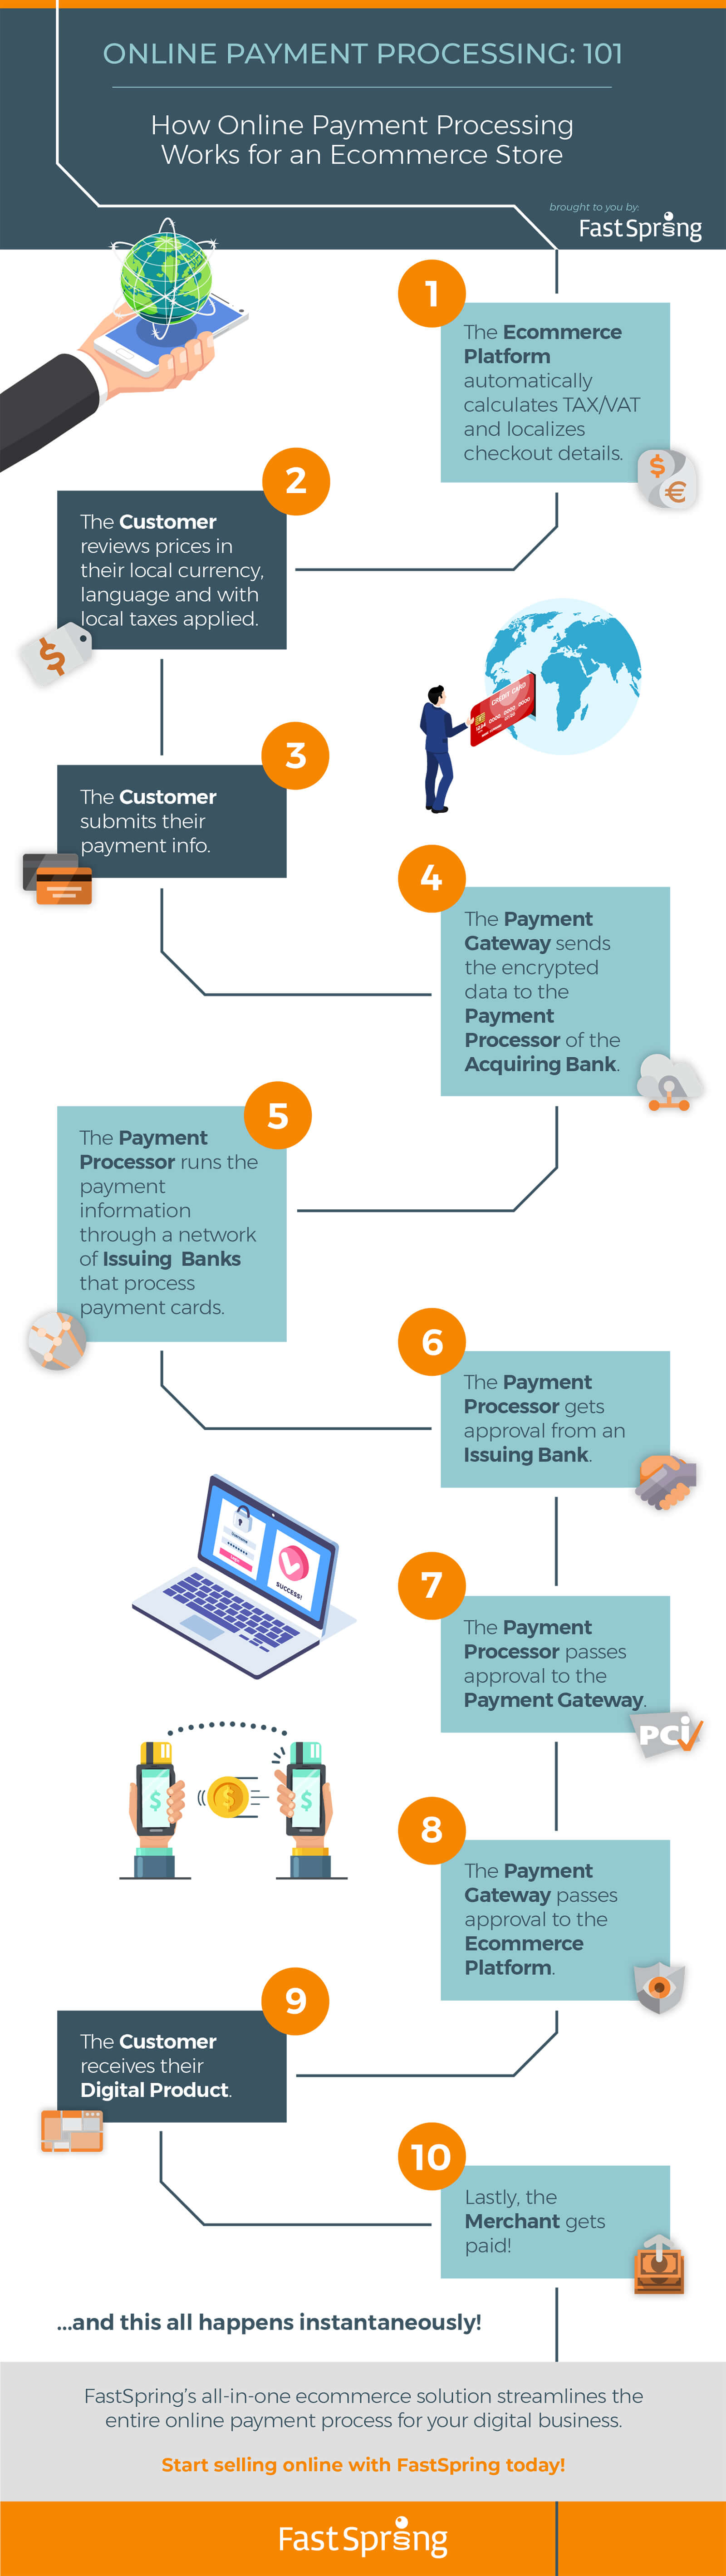 FastSpring Online Payments for Digital Business infographic